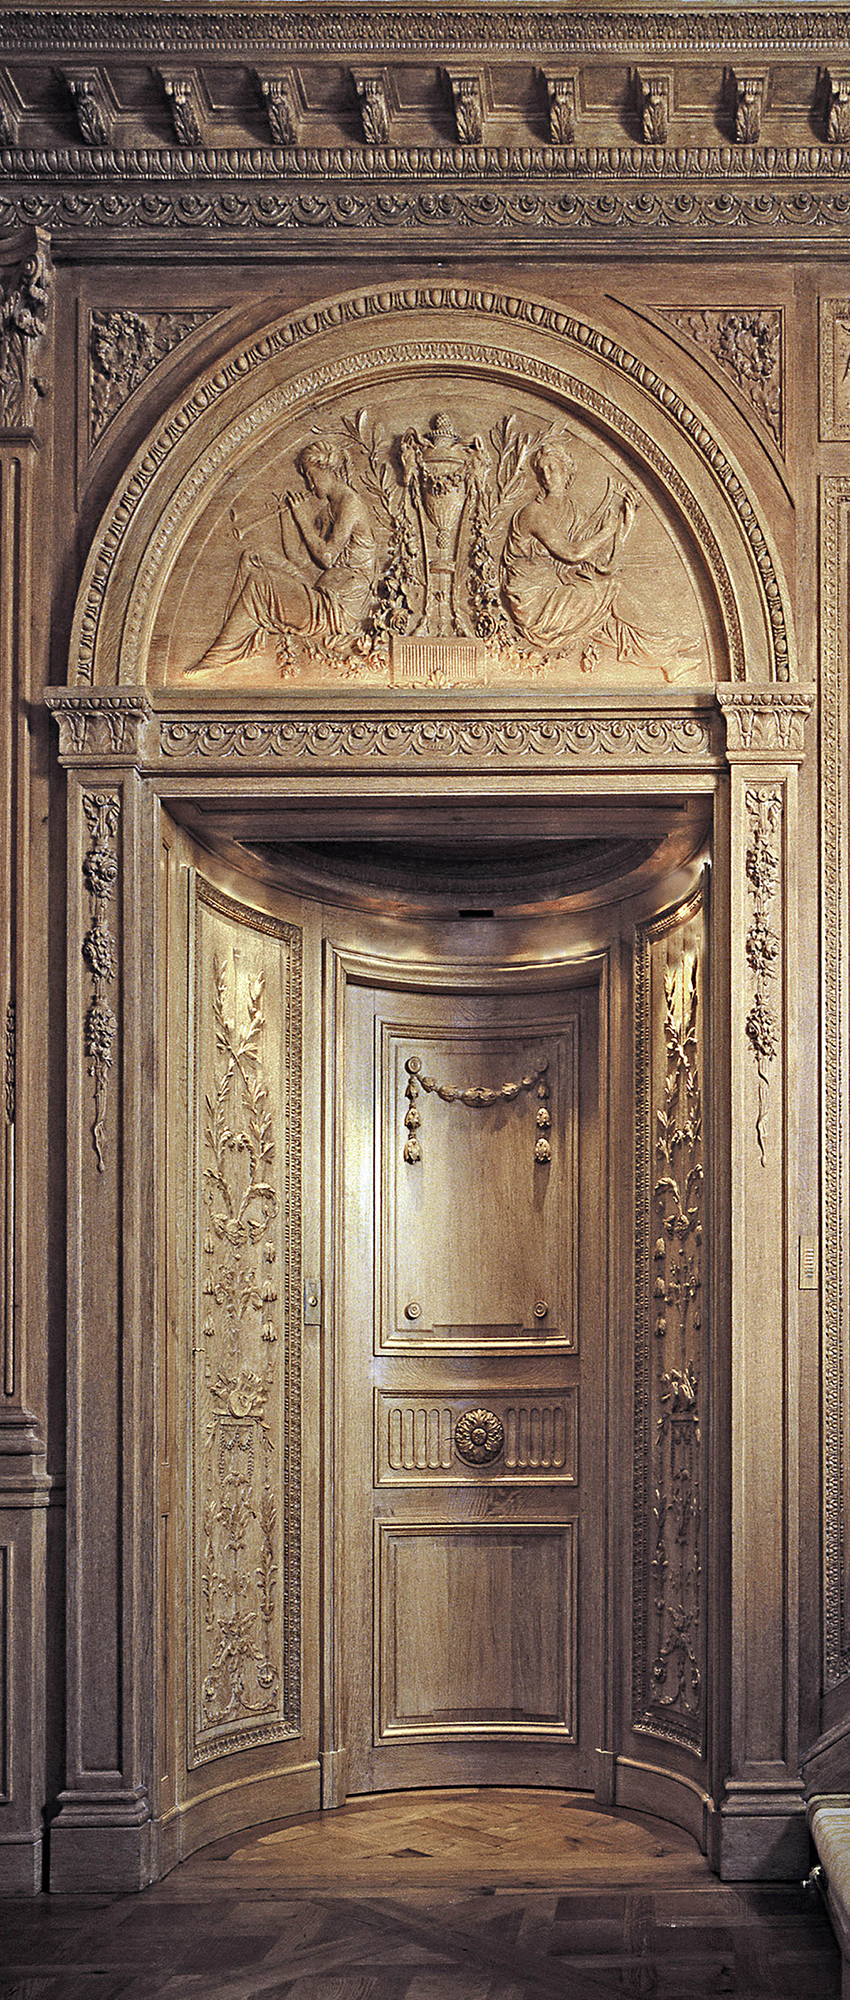 Spectacular panels and door, painted gilded wood, 18th century, Féau collection, from Place Vendôme